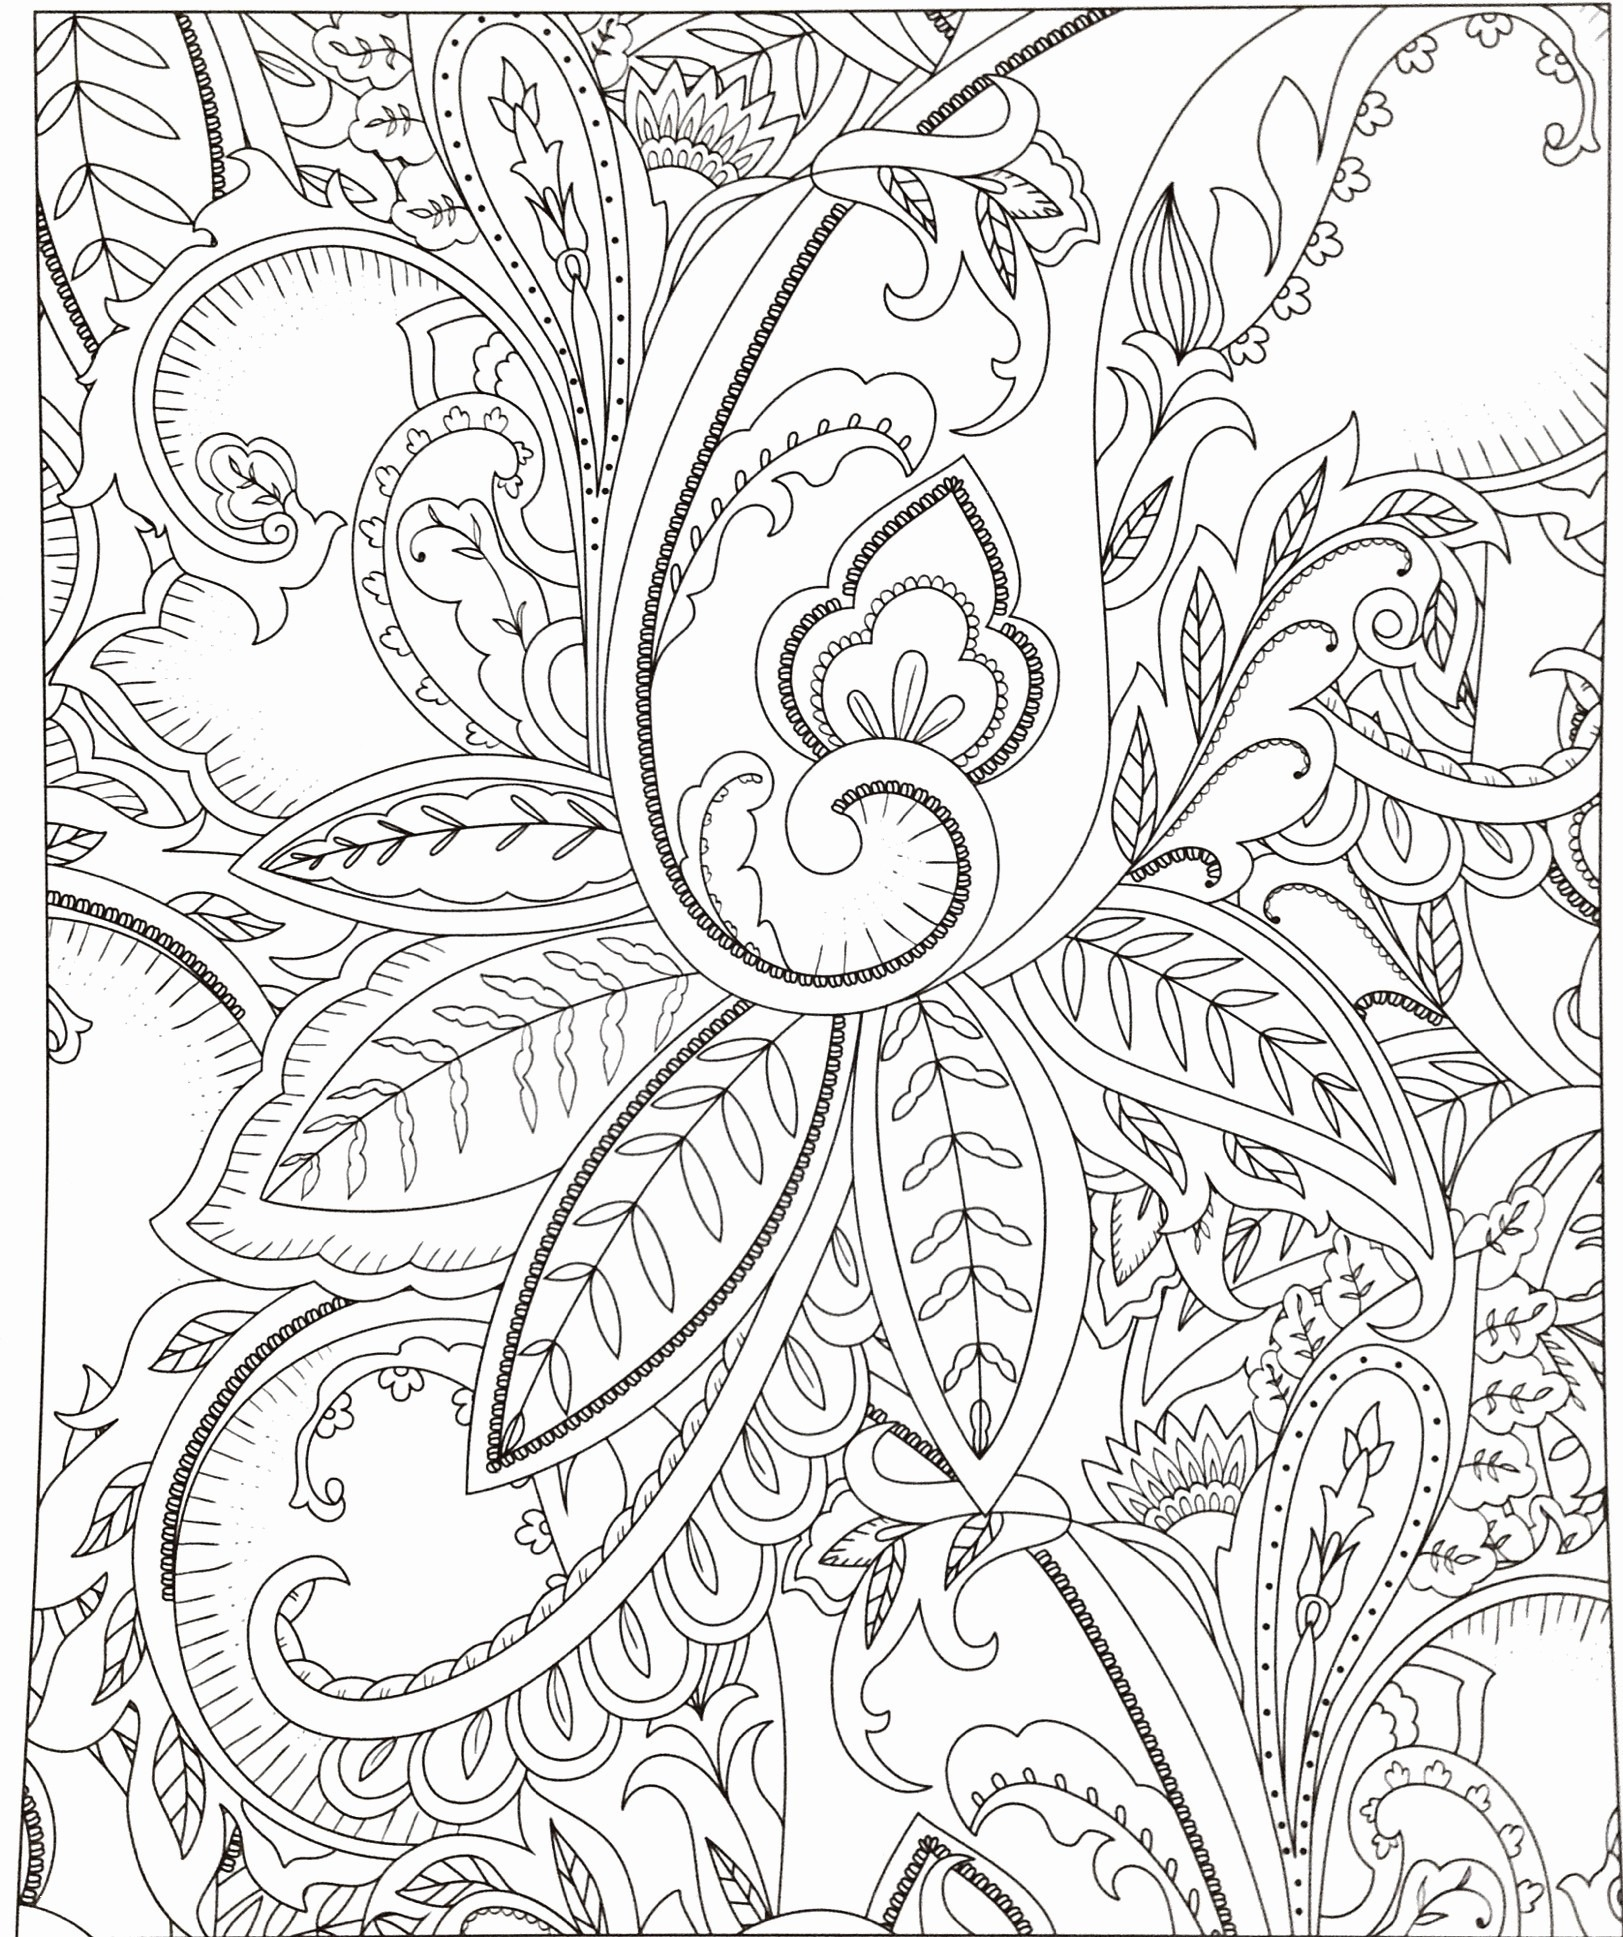 printable sloth coloring pages Collection-Rainforest Coloring Pages 7-e